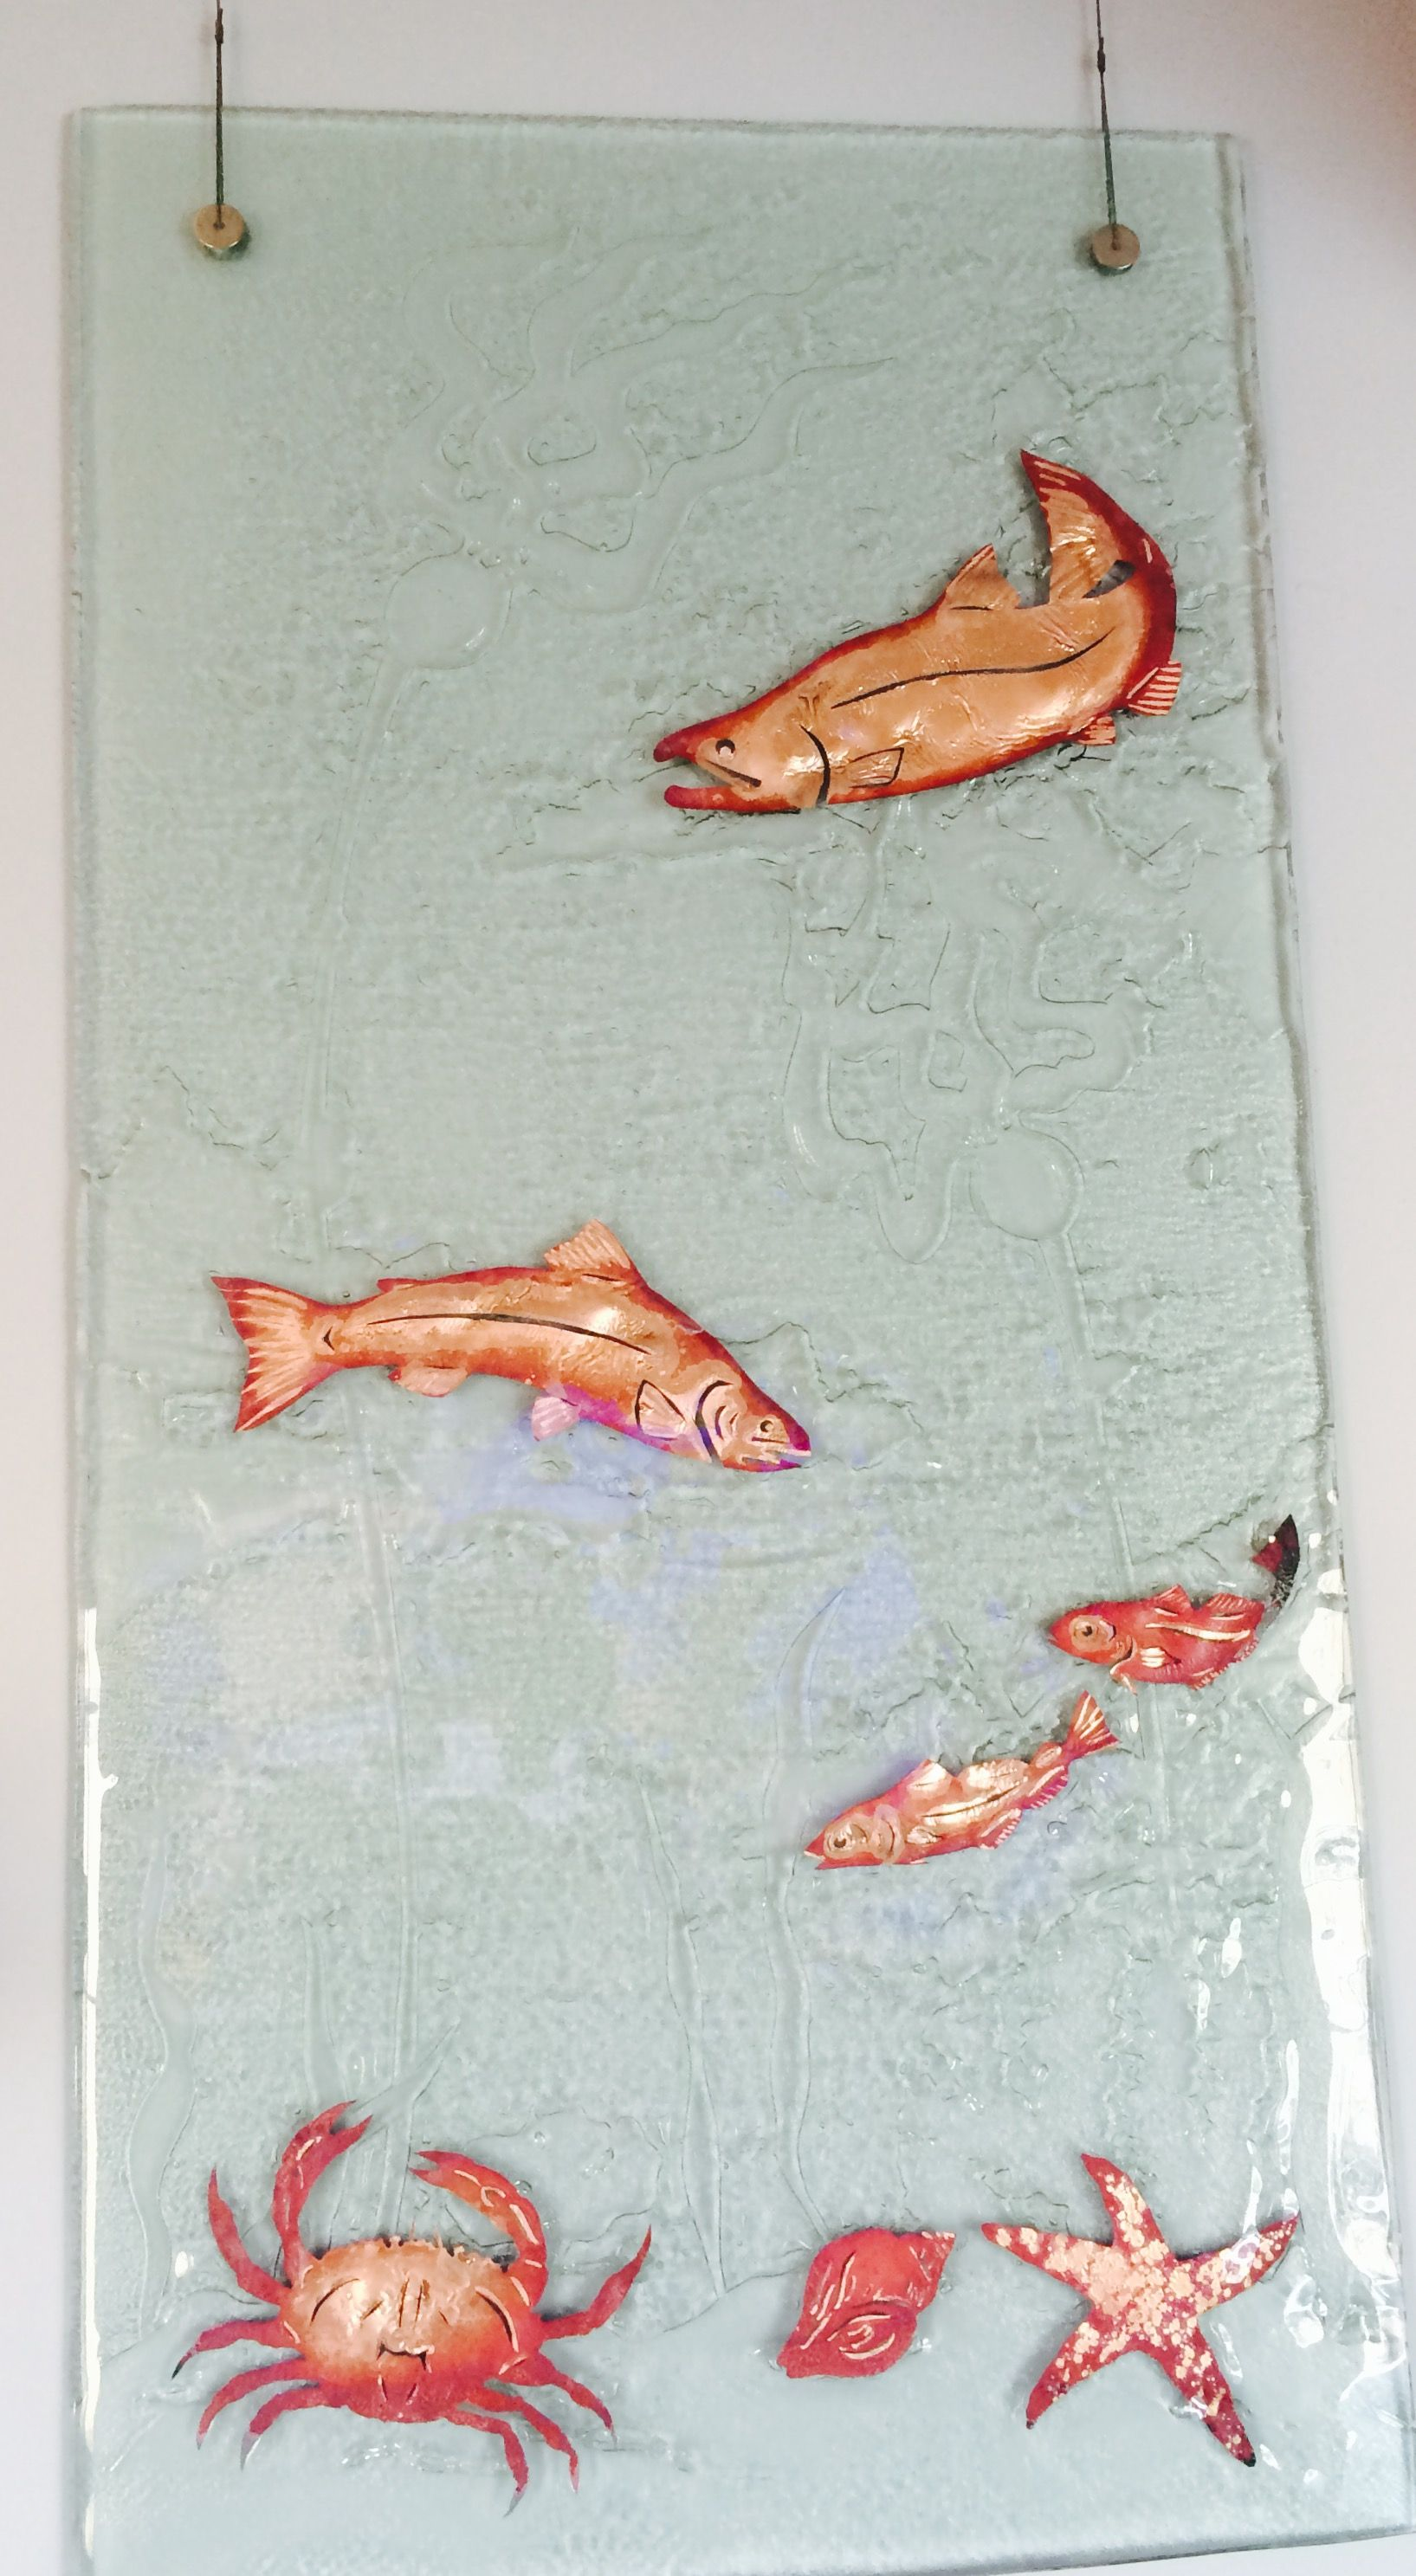 Beachy Glass  Art Panel by Jones Glass Works, Washington State.